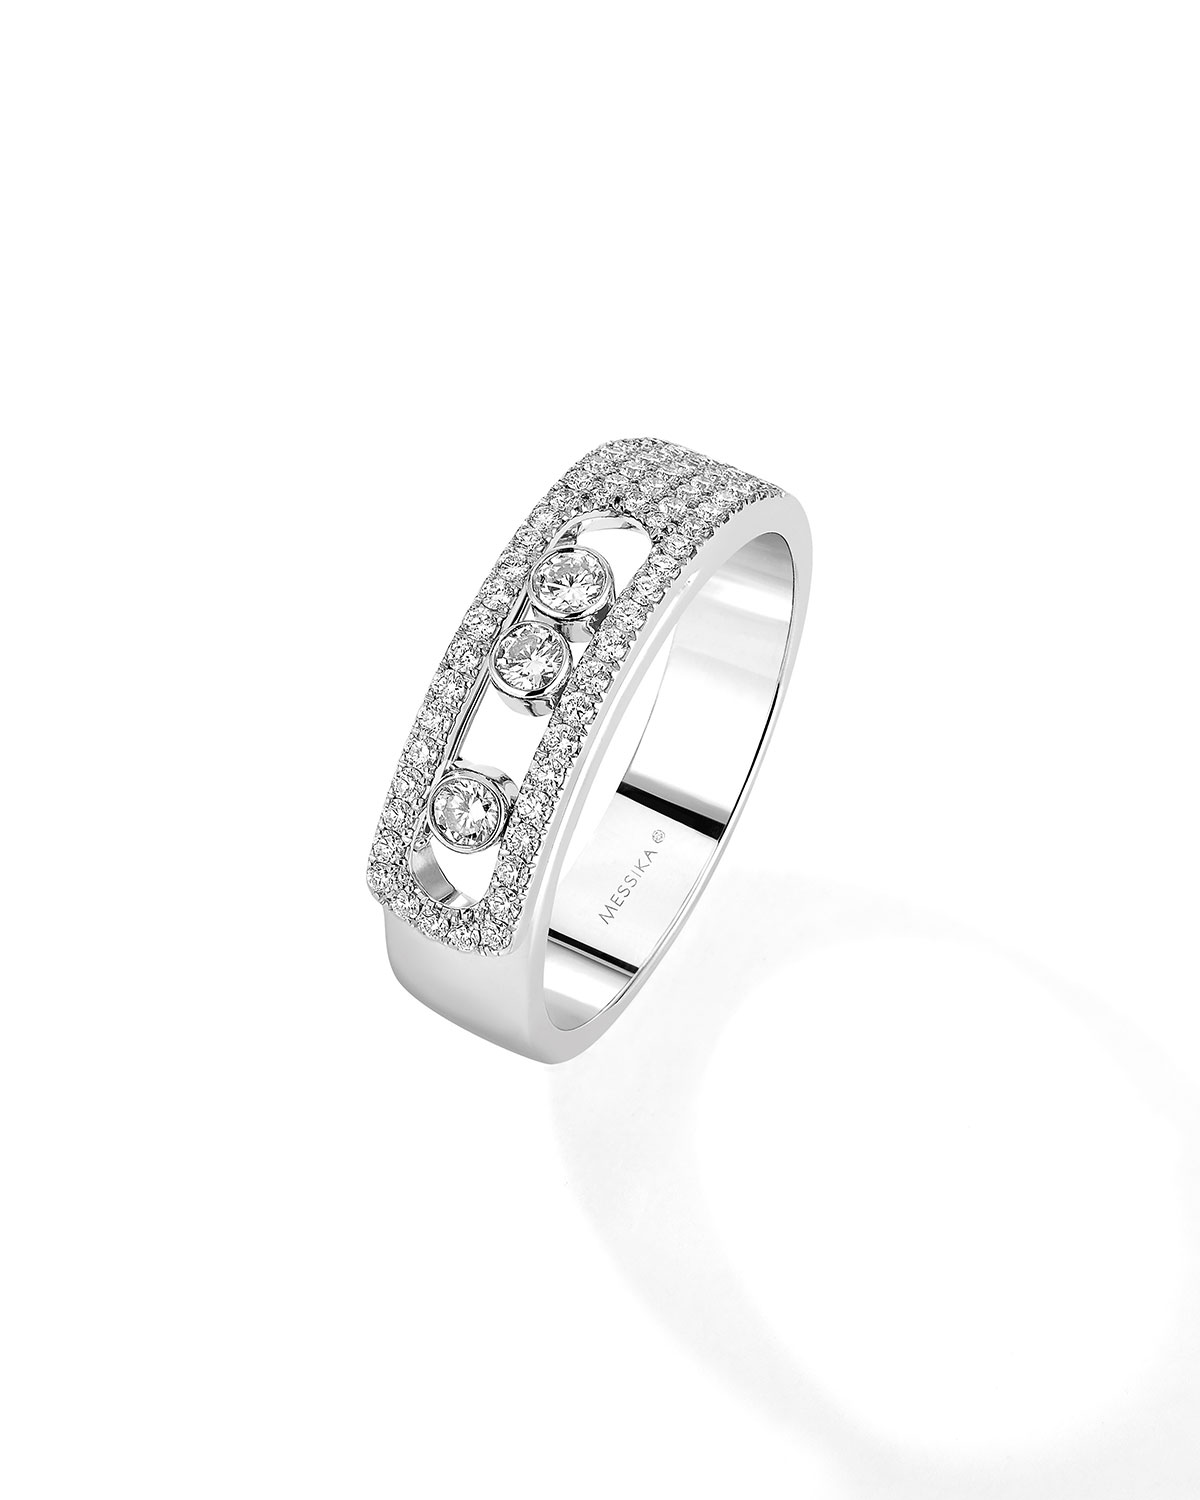 Move Pave and 3-Diamond Ring in 18k White Gold